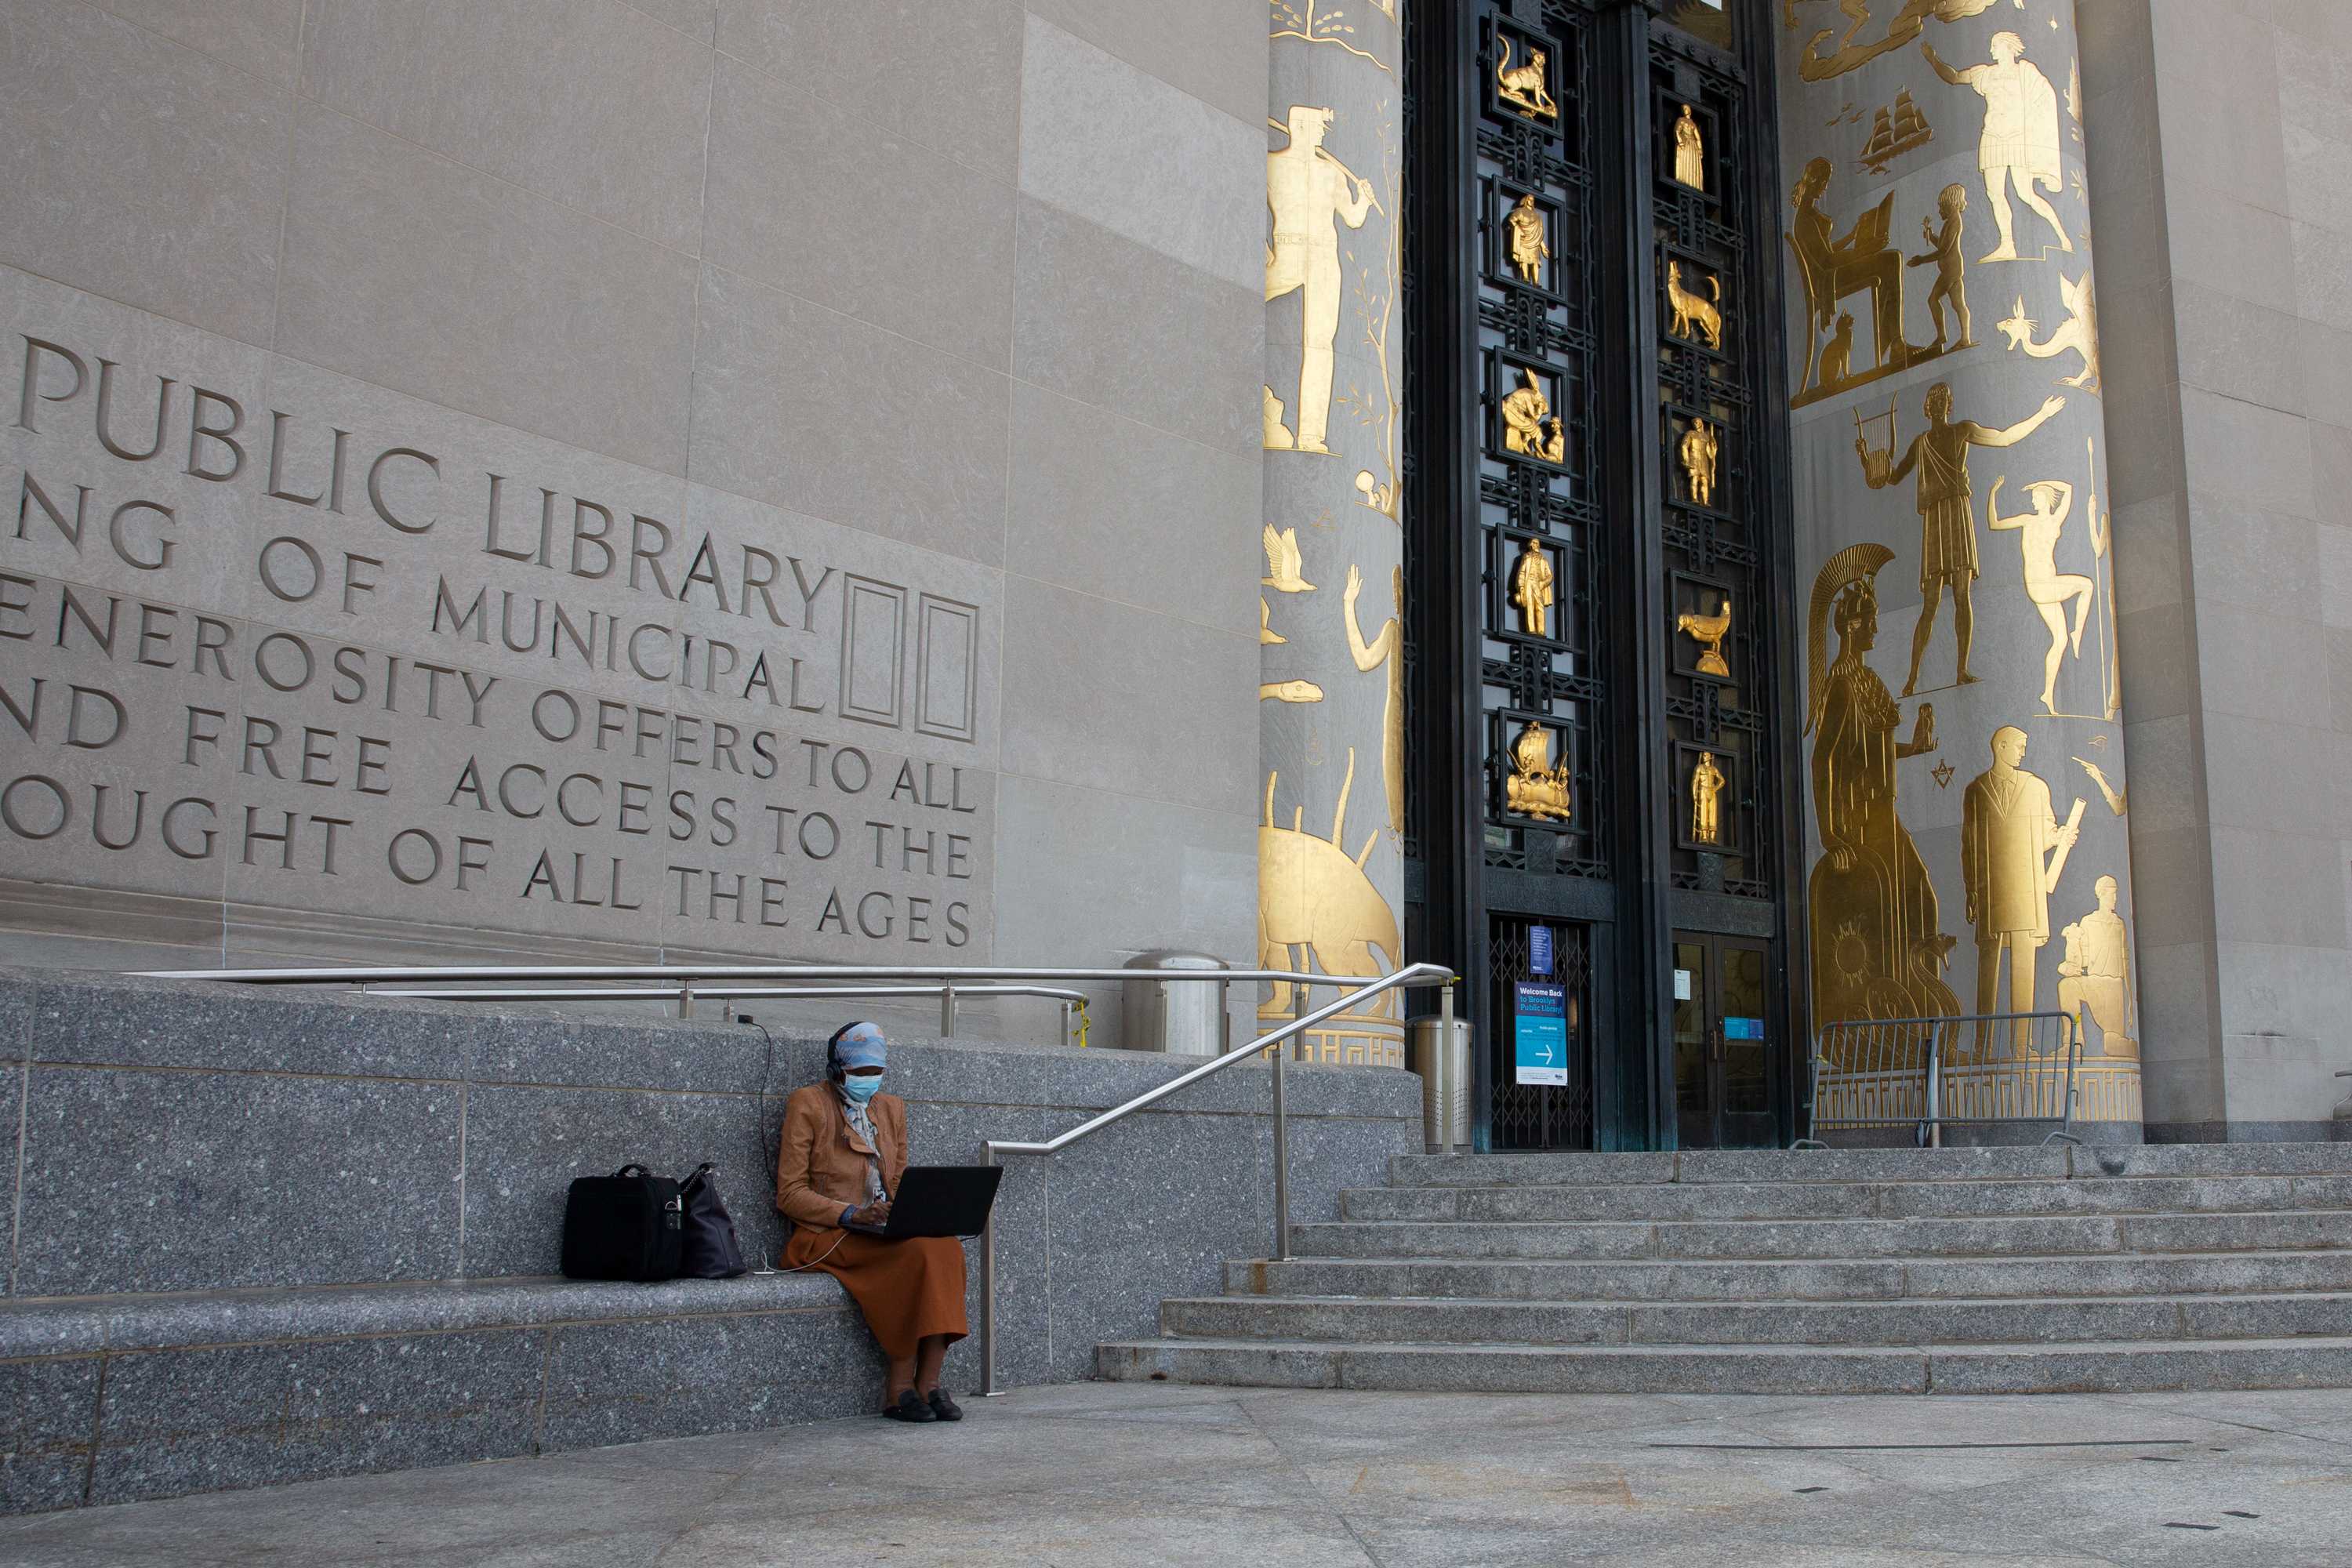 A woman uses free wifi from the Brooklyn Central Public Library, Sept. 14, 2020.